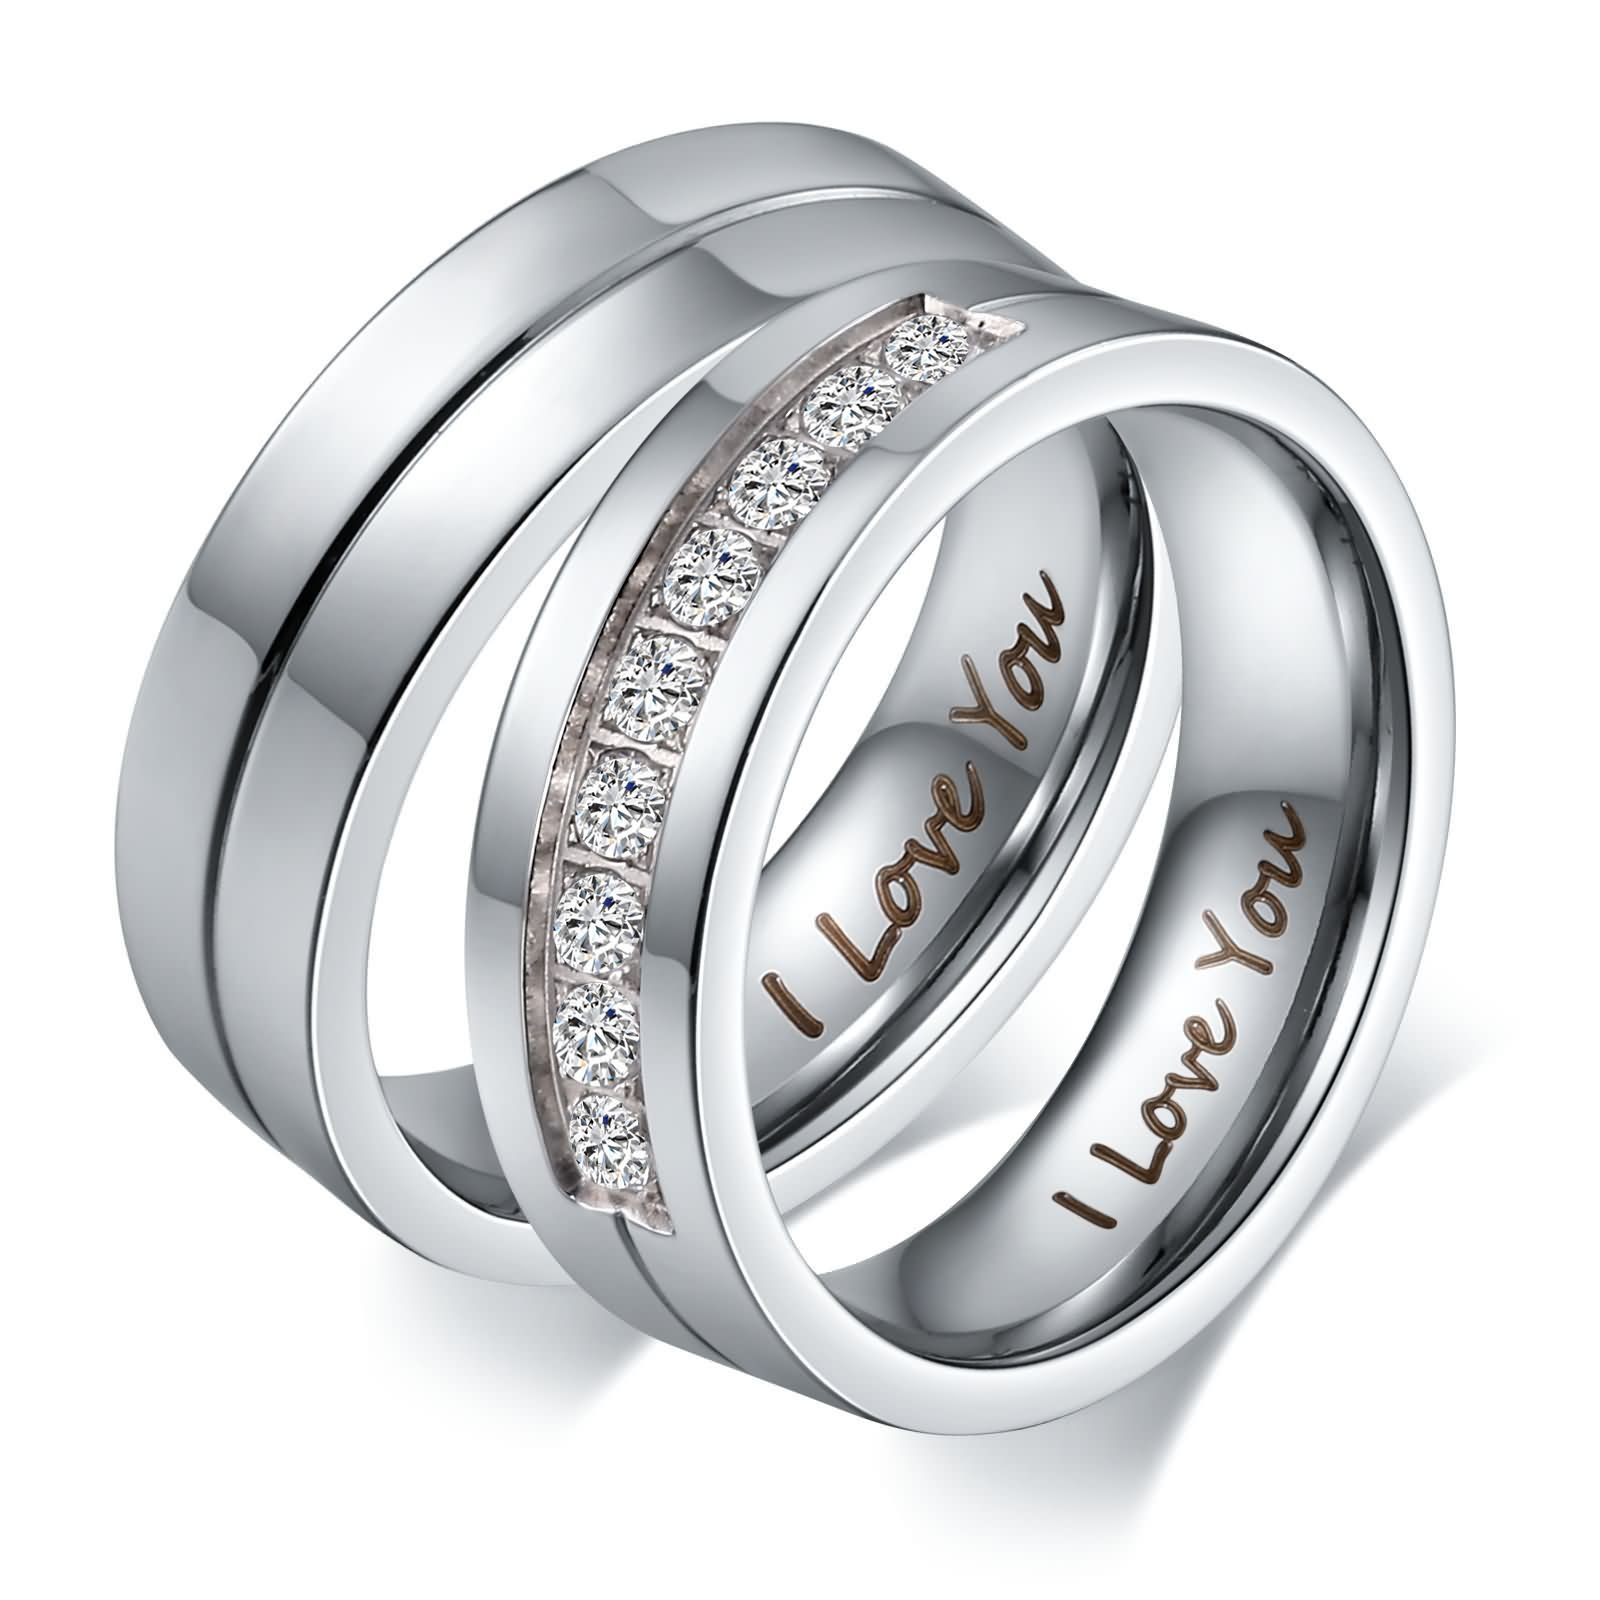 Aeici Engagement Rings Promise Rings for Hers Stainless Steel Cubic Zirconia Rings Engraved I Love You